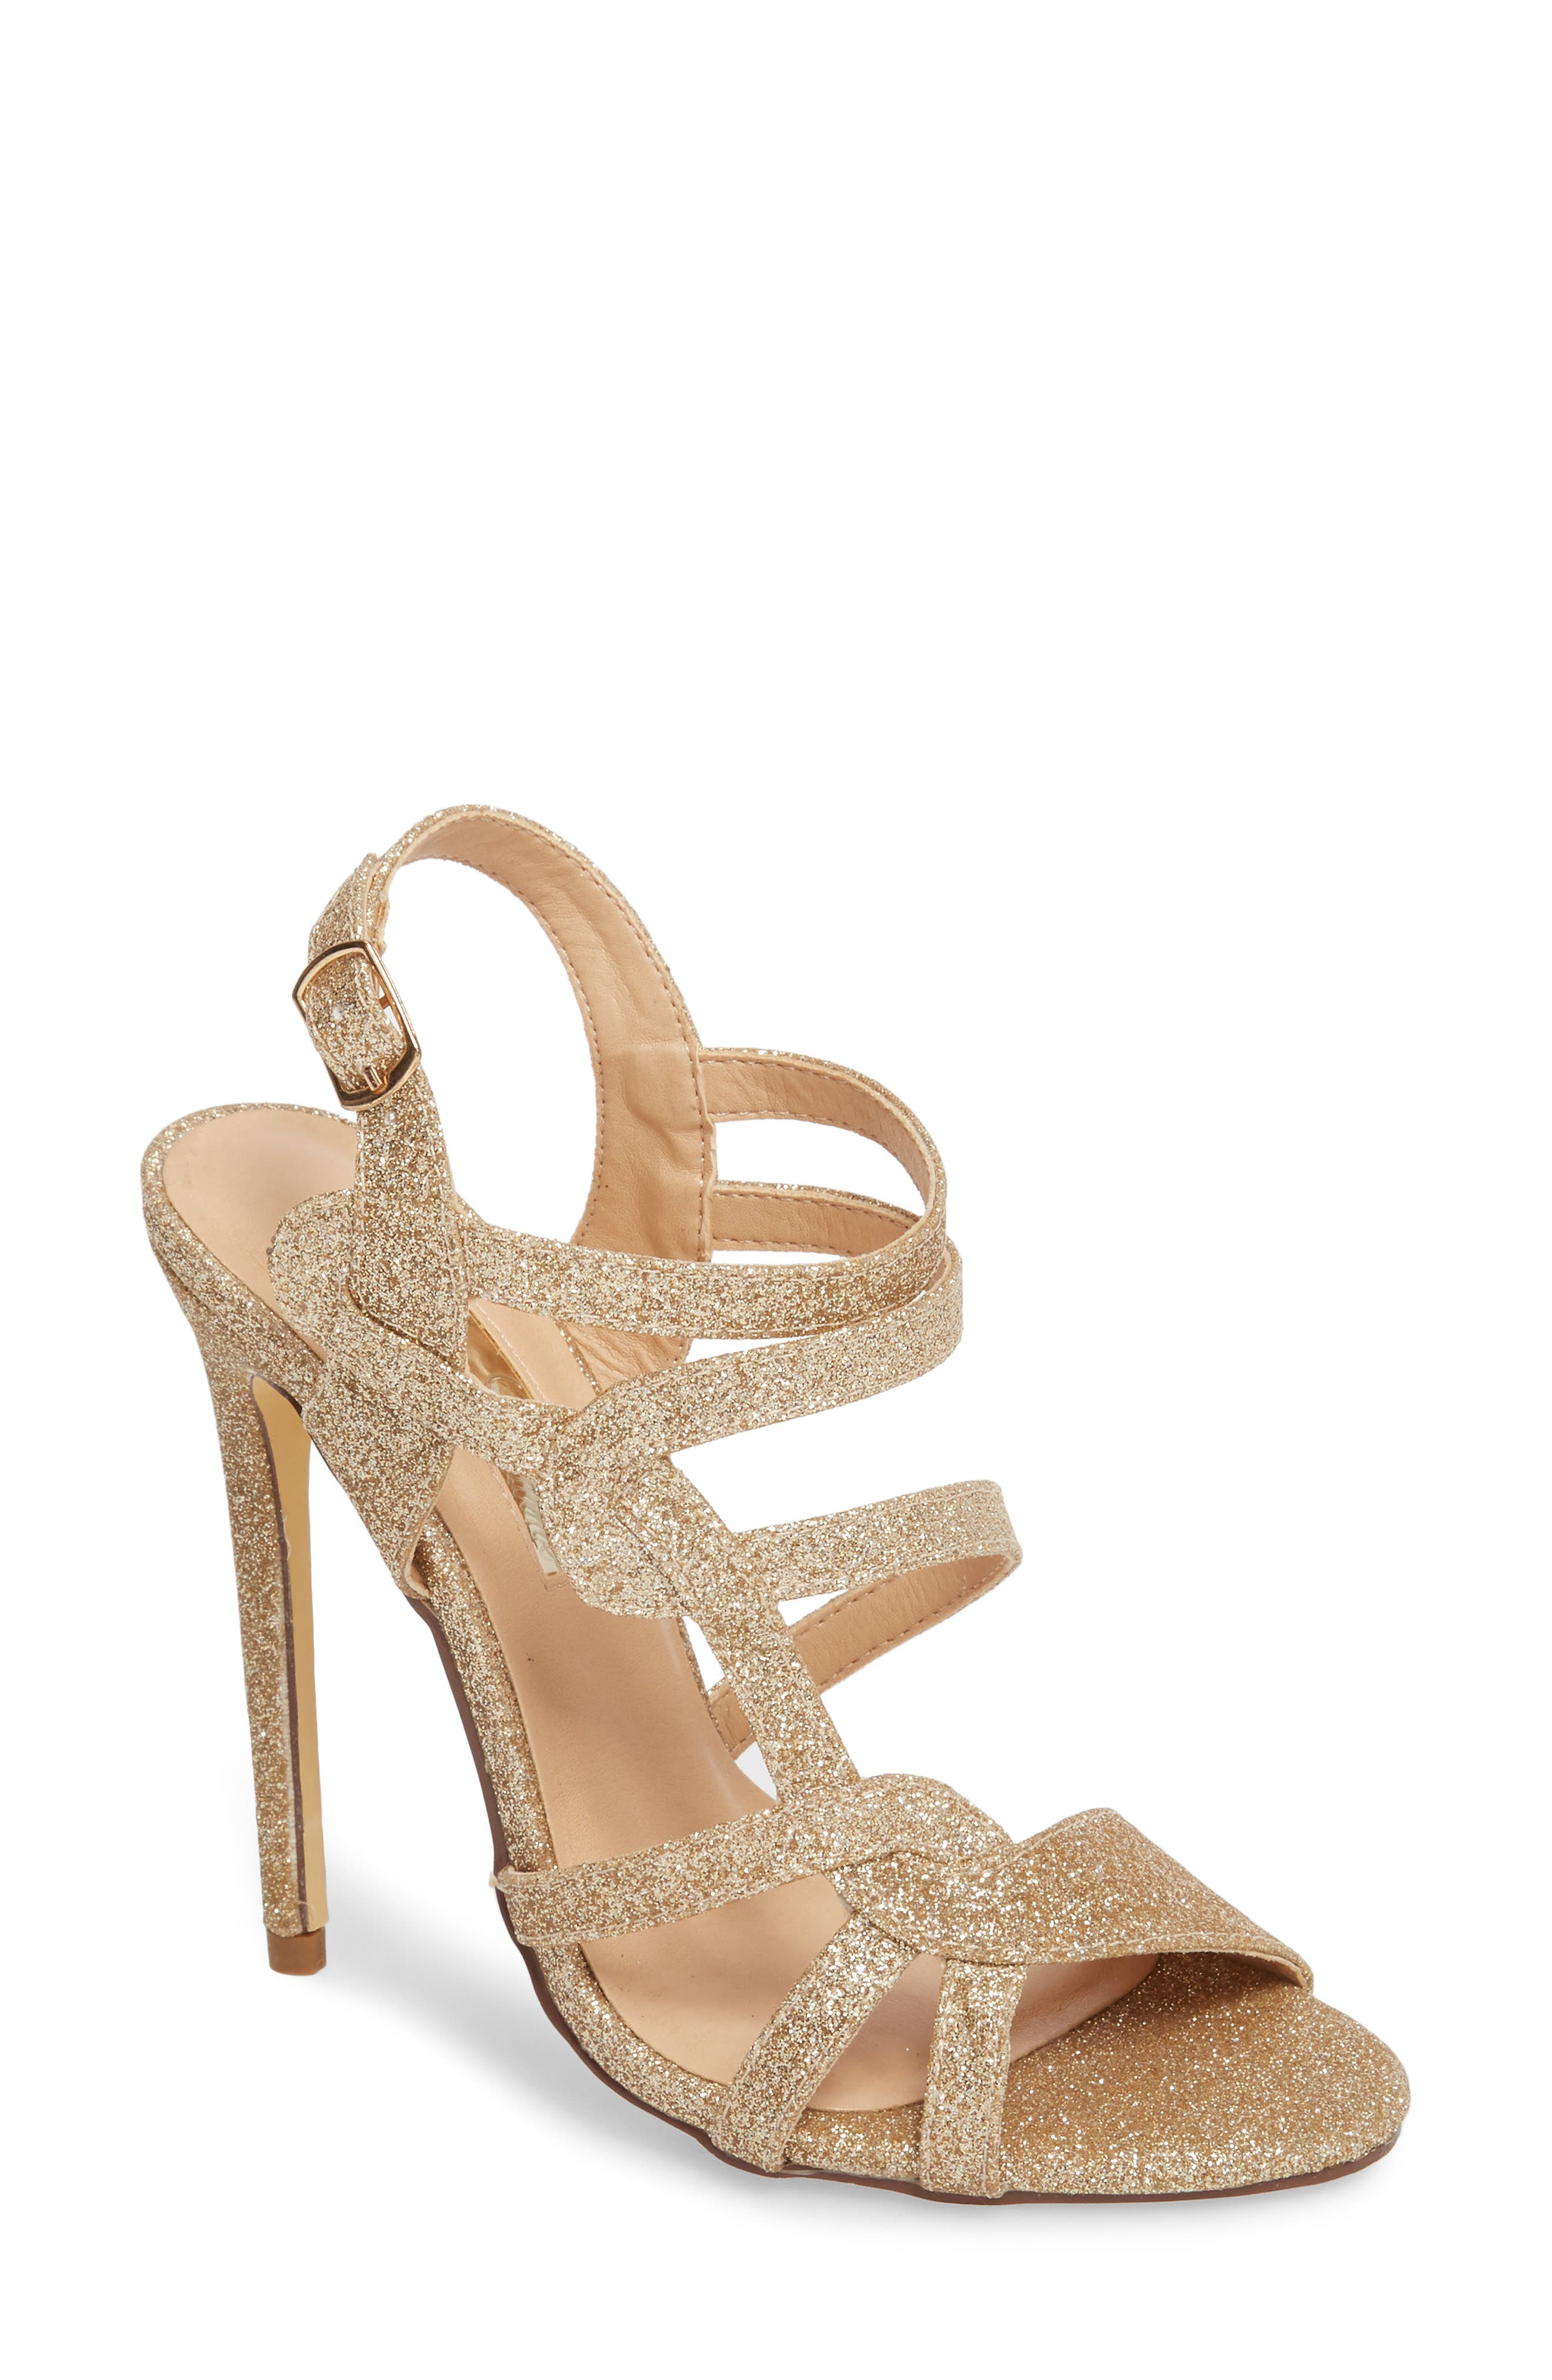 LAUREN LORRAINE Gidget Sandal, Main, color, NUDE FABRIC